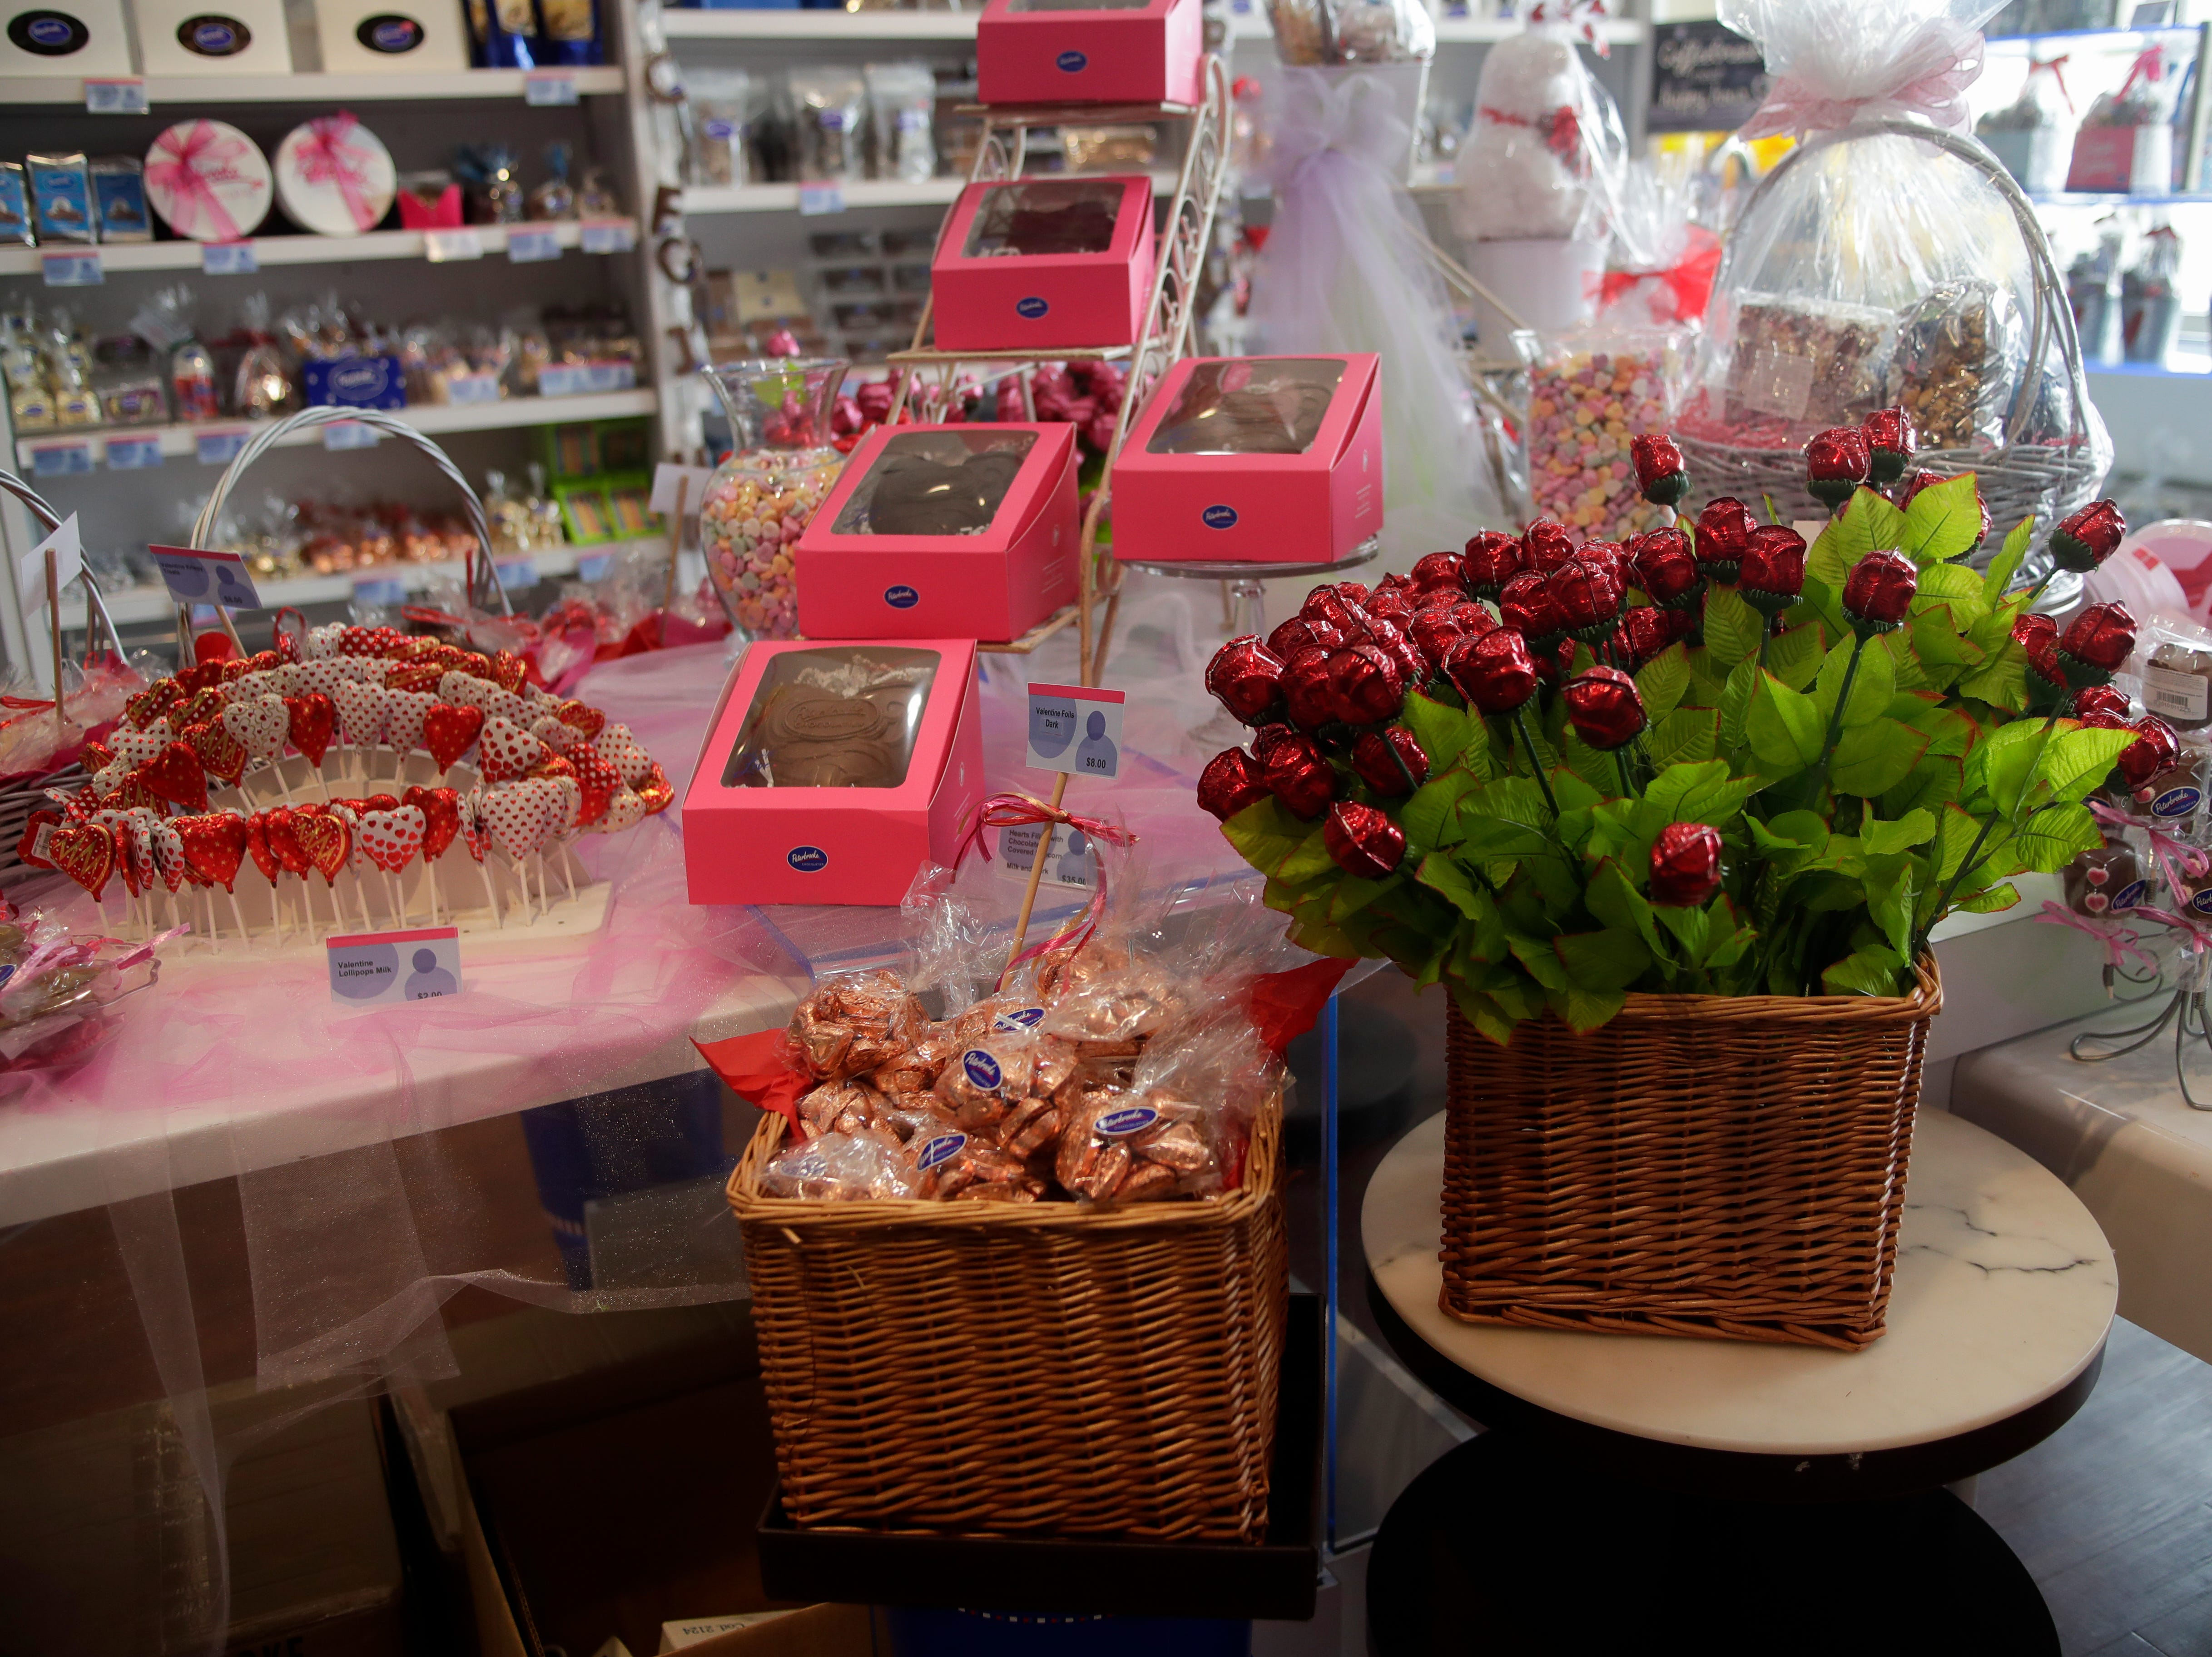 There are many Valentine's Day items to choose from at Peterbrooke Chocolatier including heart-shaped roses, chocolate covered marshmallows, a chocolate heart filled with chocolate covered popcorn and more.